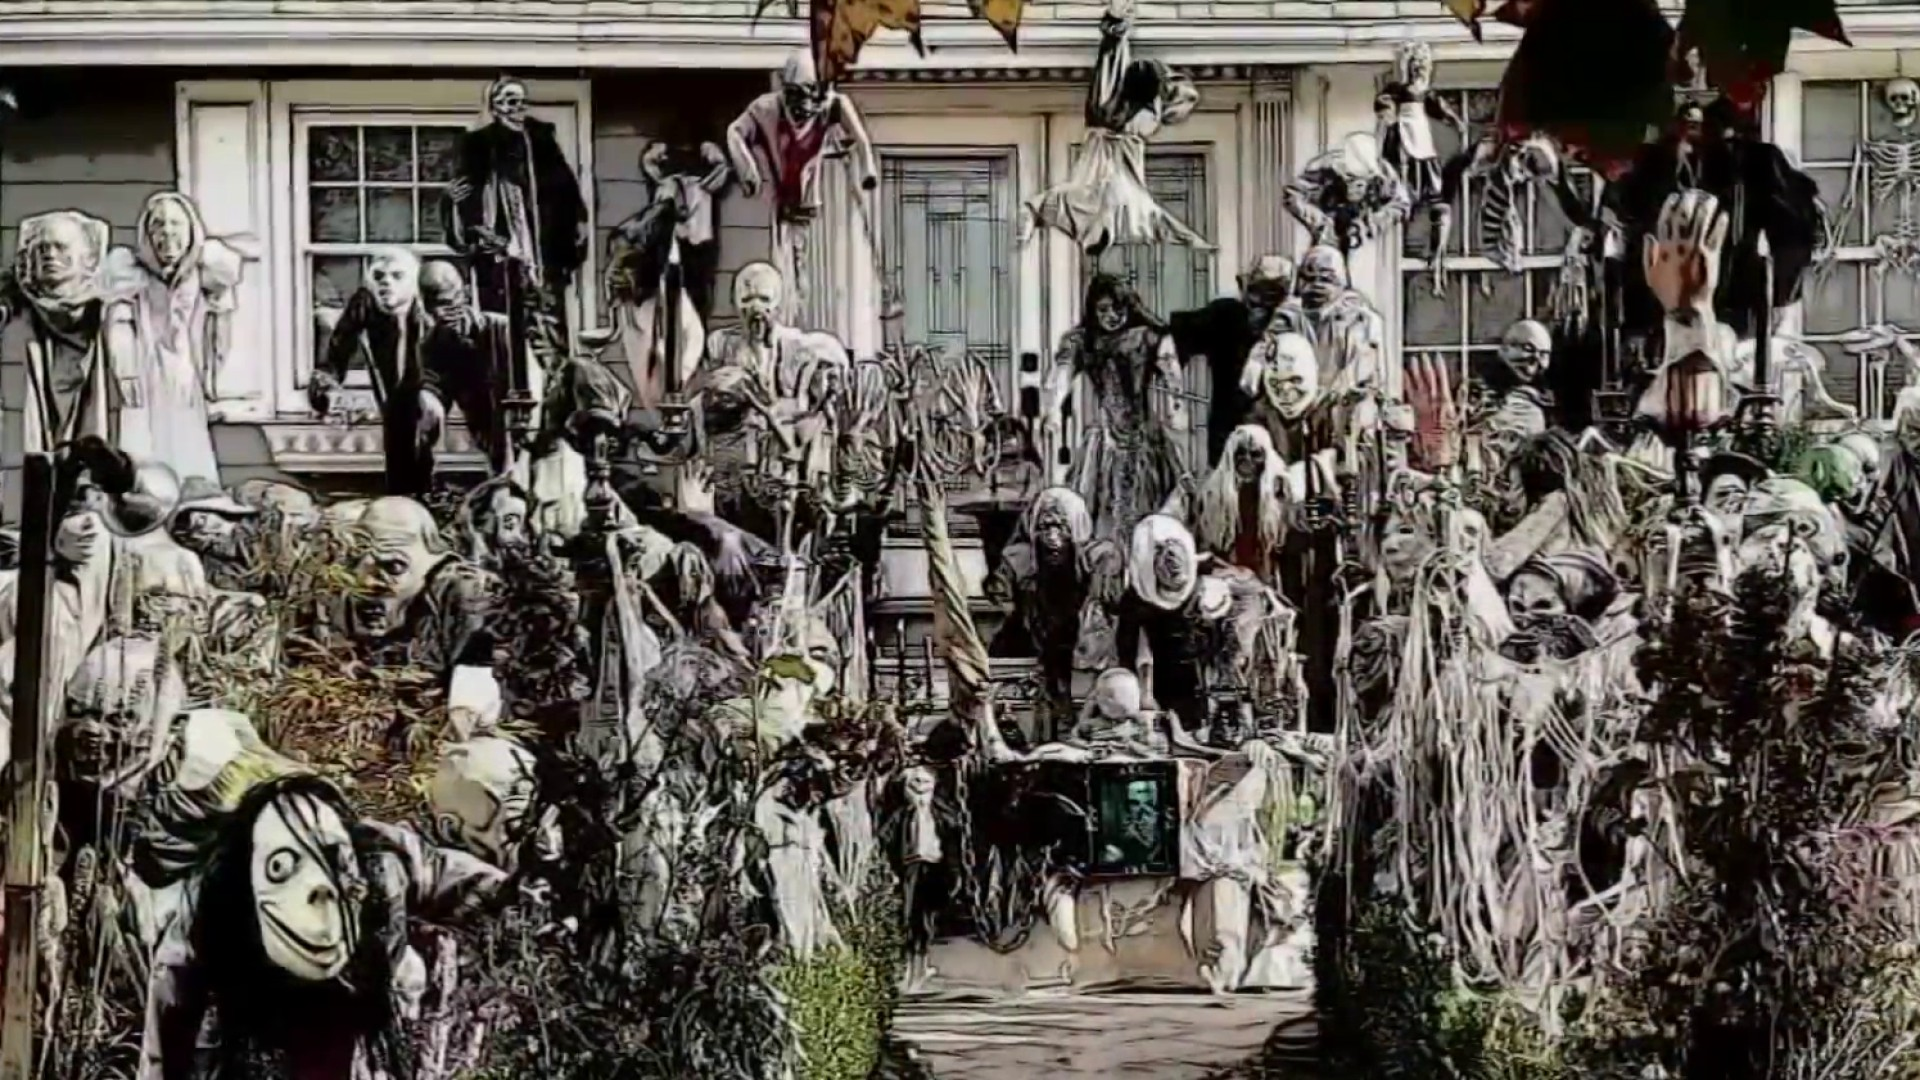 Neighbors Rally to Bring NJ Man's Halloween Display Back After Complaints of Crowd